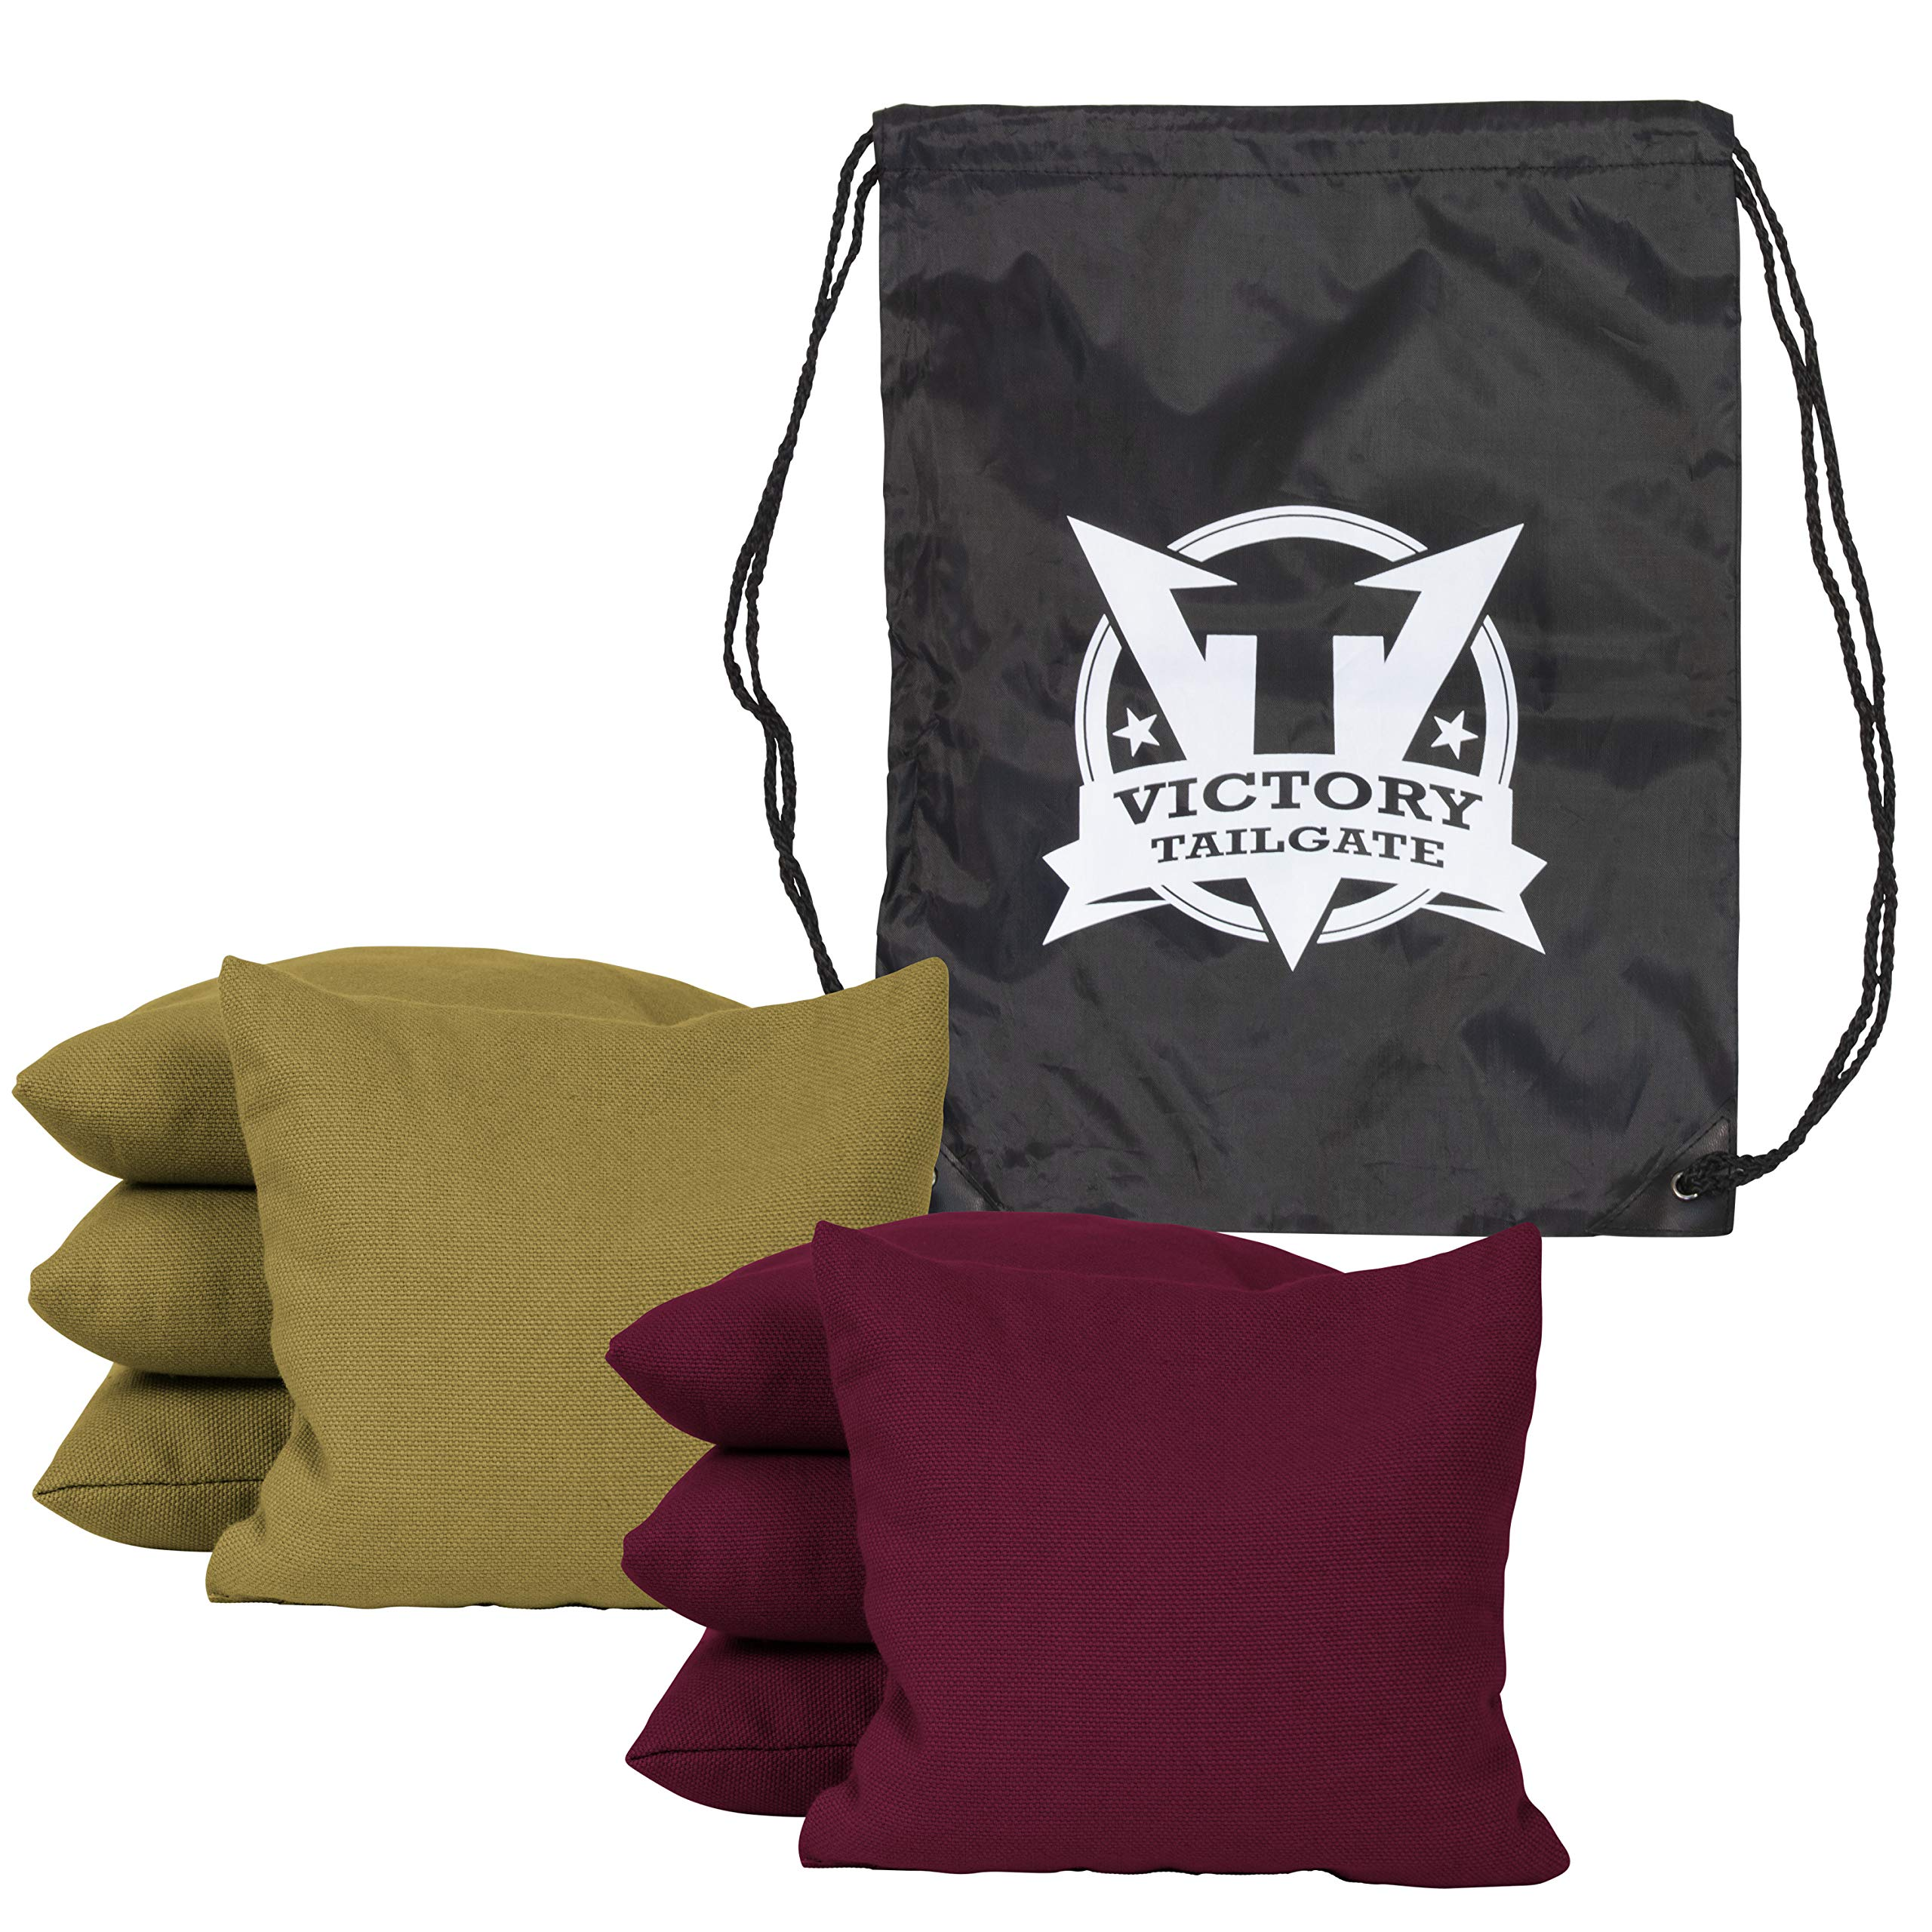 Victory Tailgate 8 Colored Corn Filled Regulation Cornhole Bags with Drawstring Pack (4 Burgundy, 4 Gold)